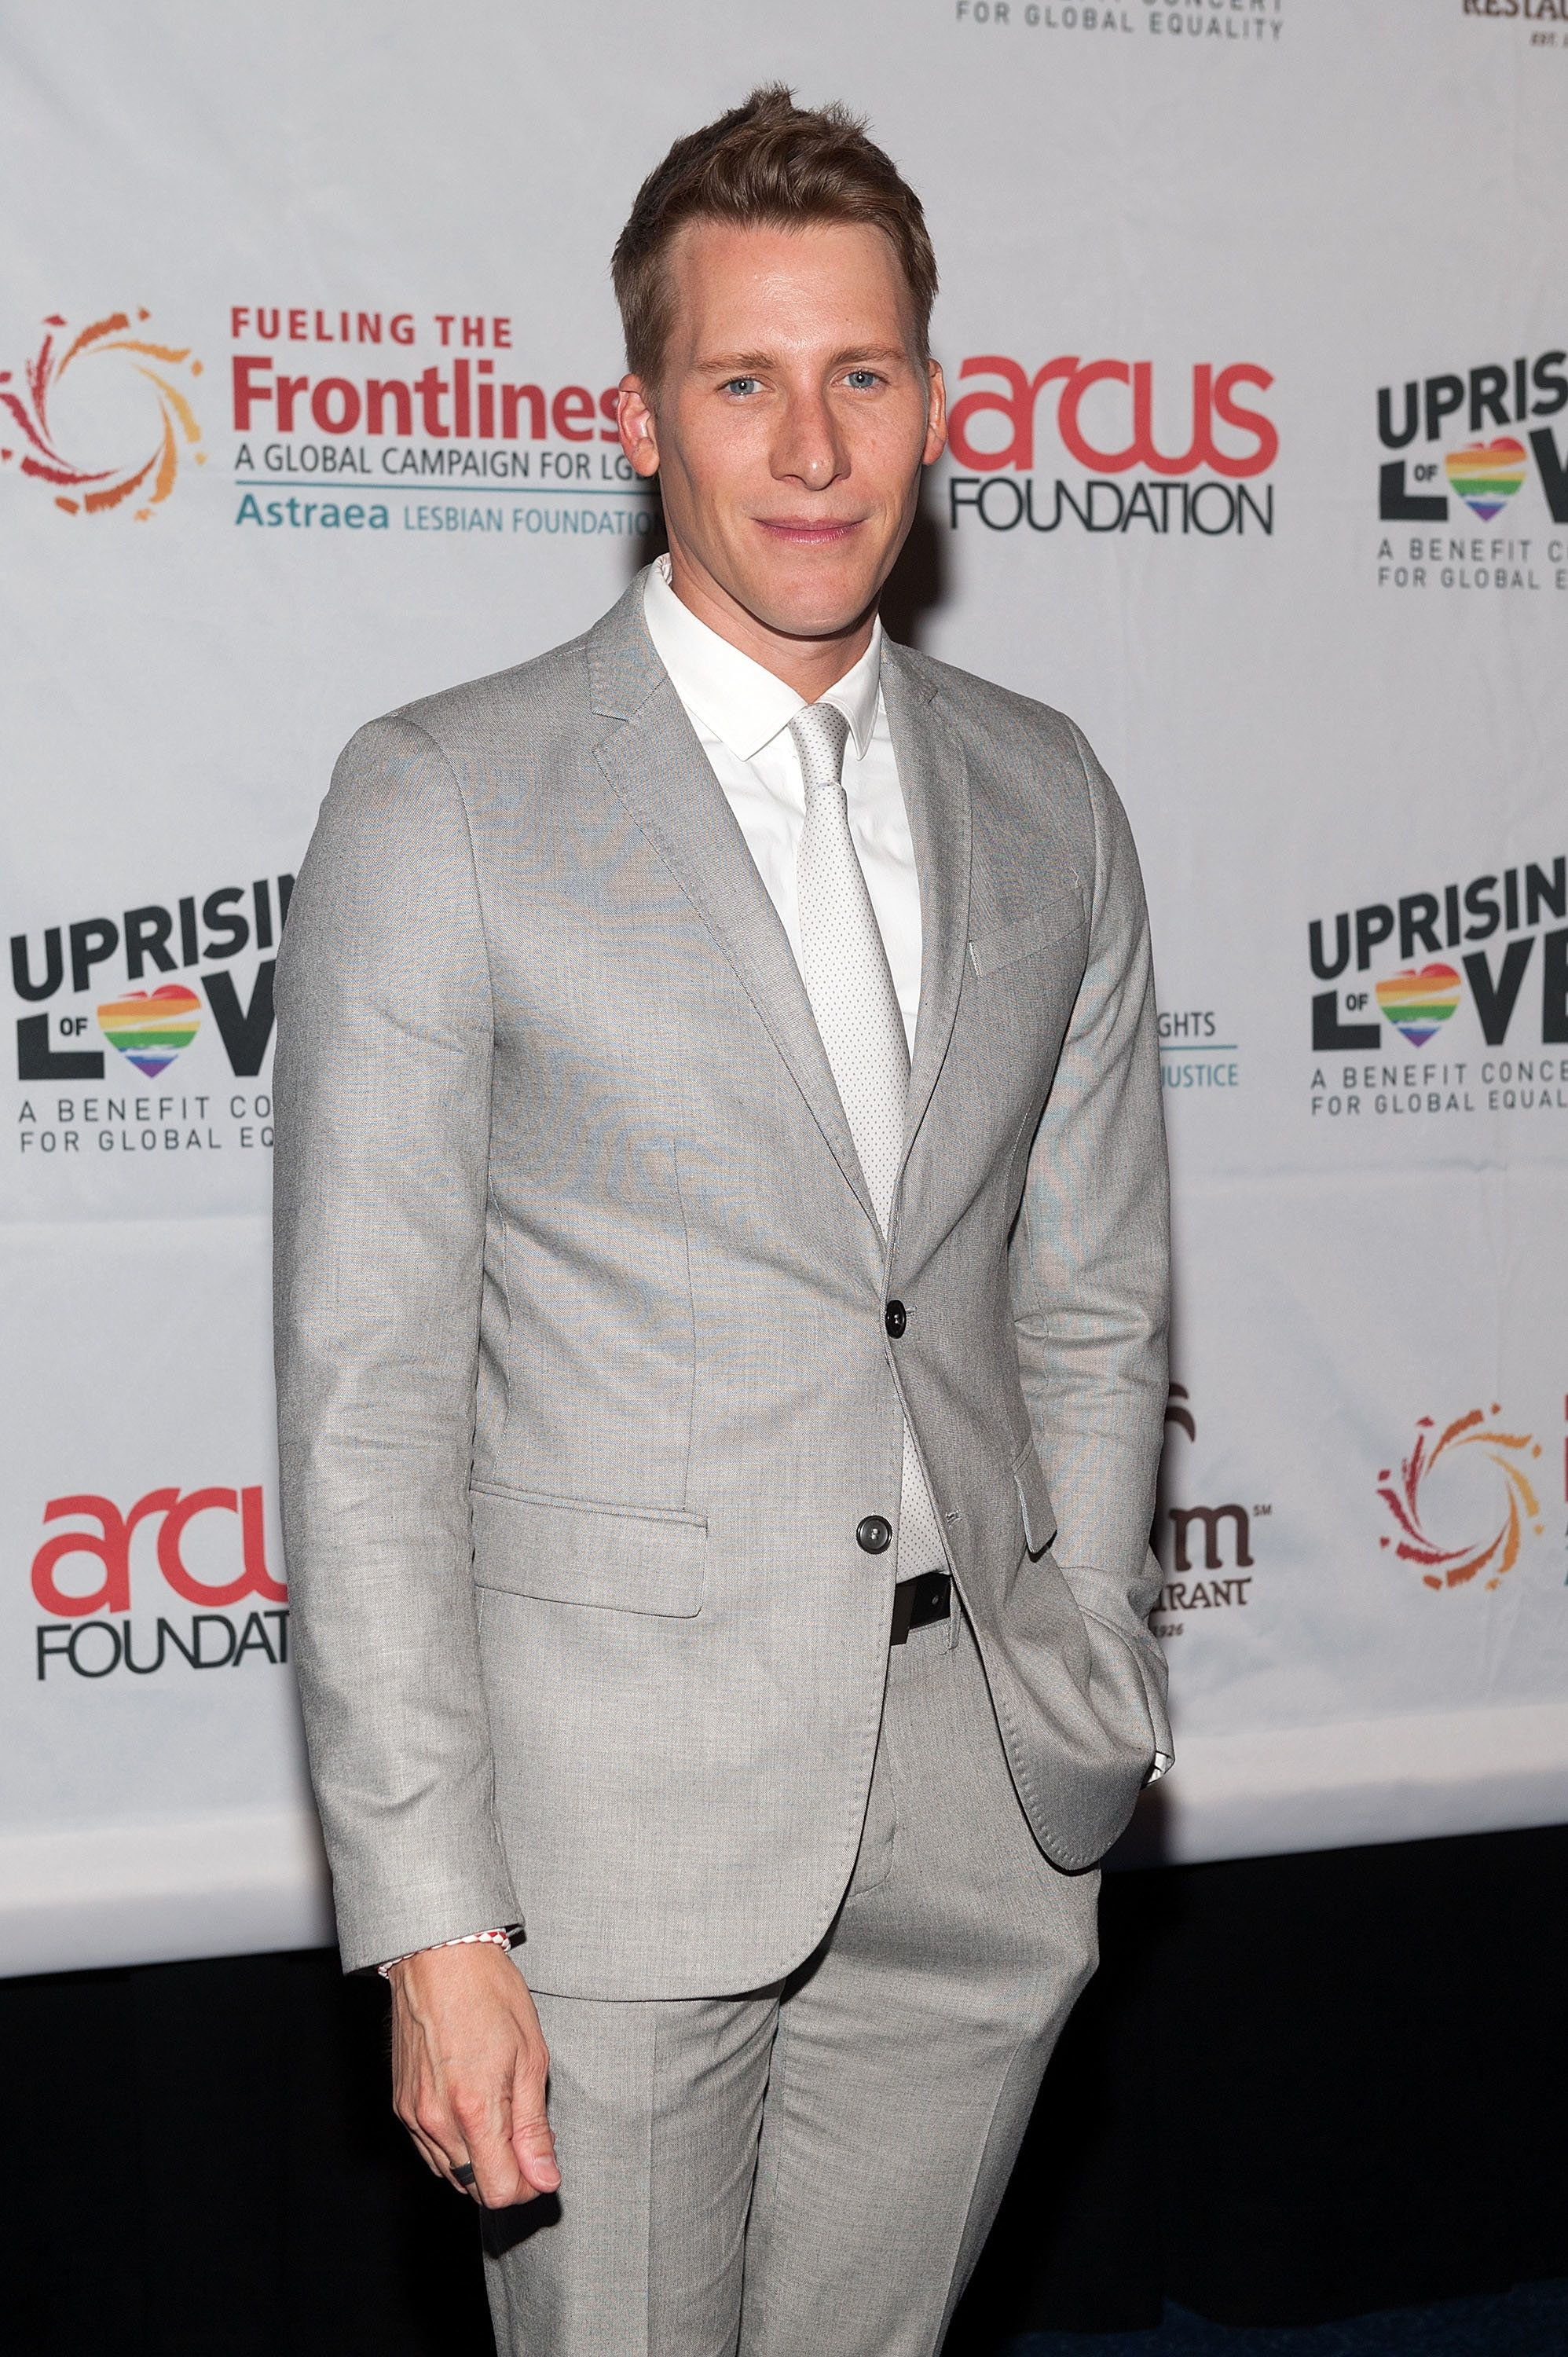 Dustin Lance Black Slams Actors Who Lie About Their